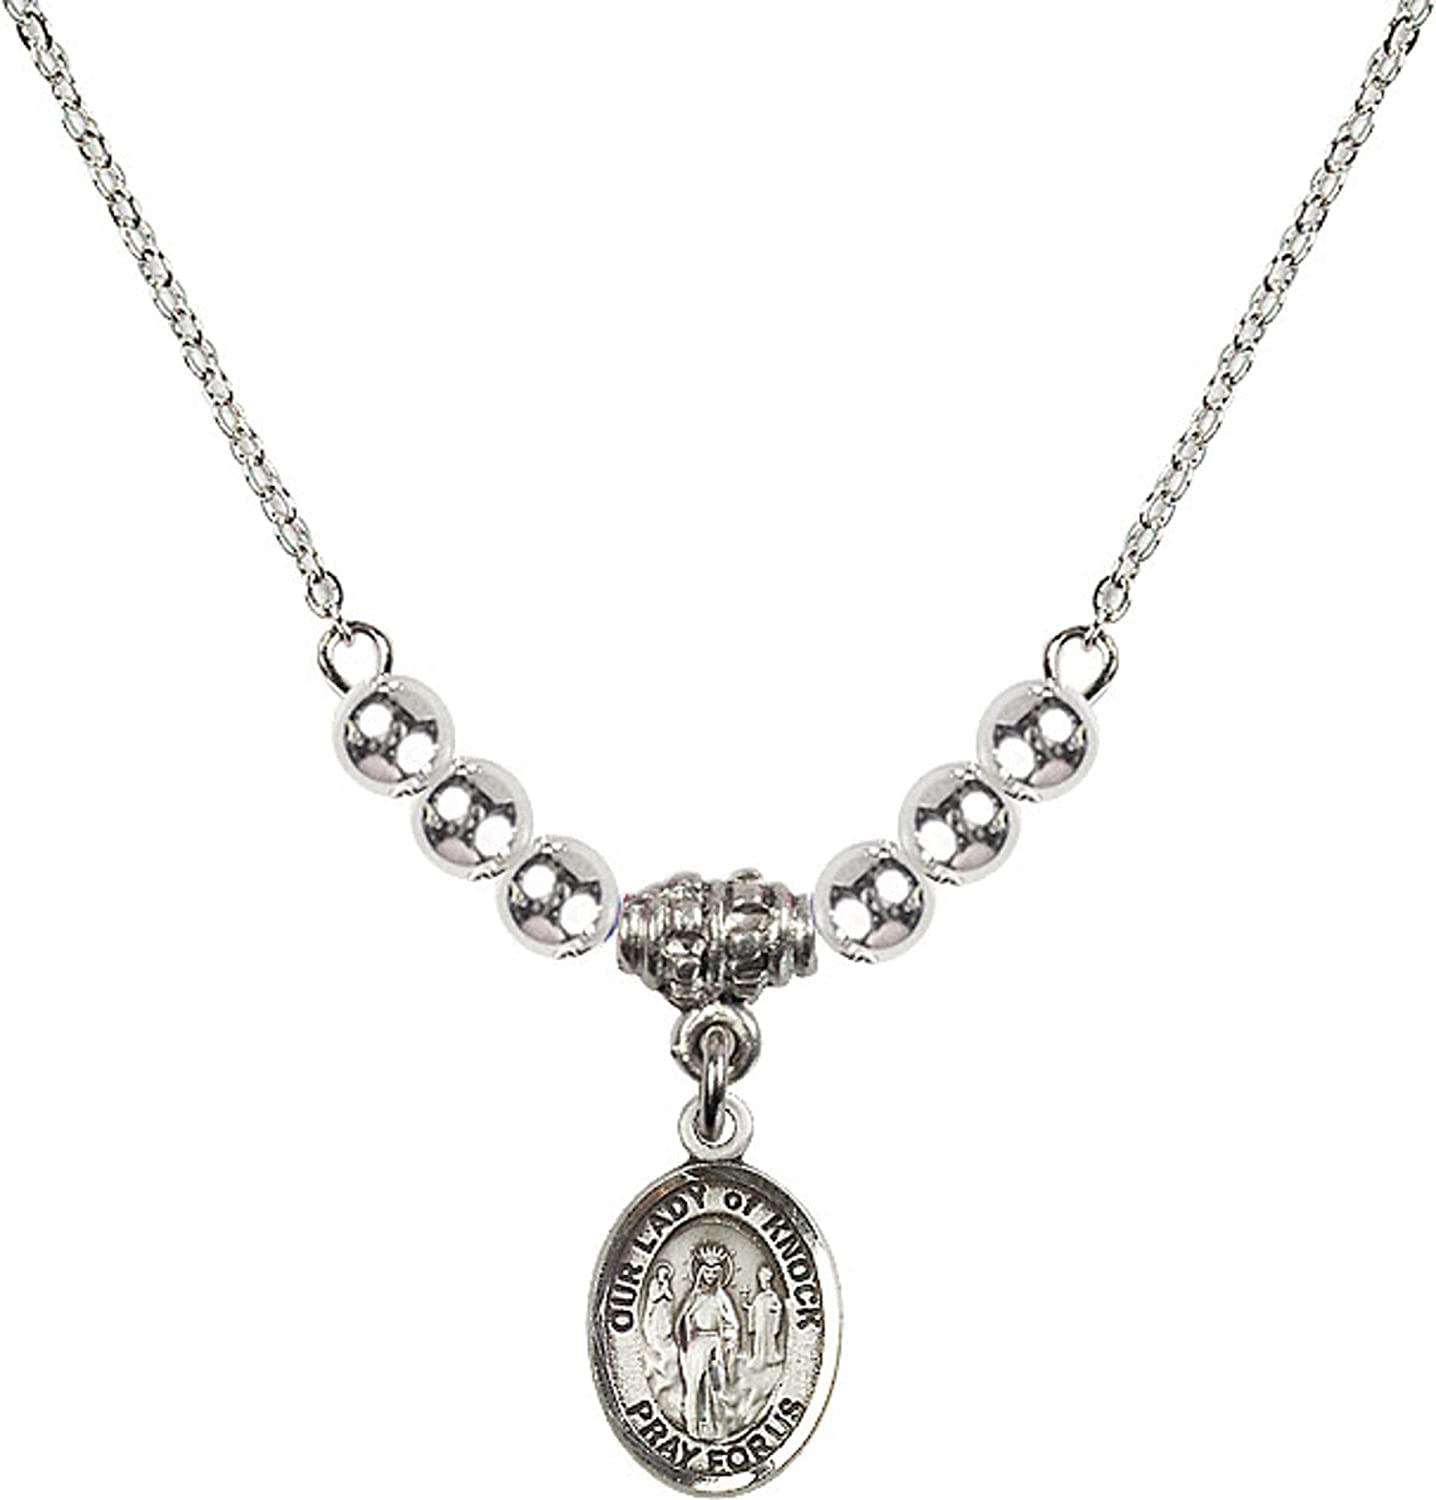 Bonyak Jewelry 18 Inch Rhodium Plated Necklace w// 4mm Sterling Silver Beads and Our Lady of Knock Charm